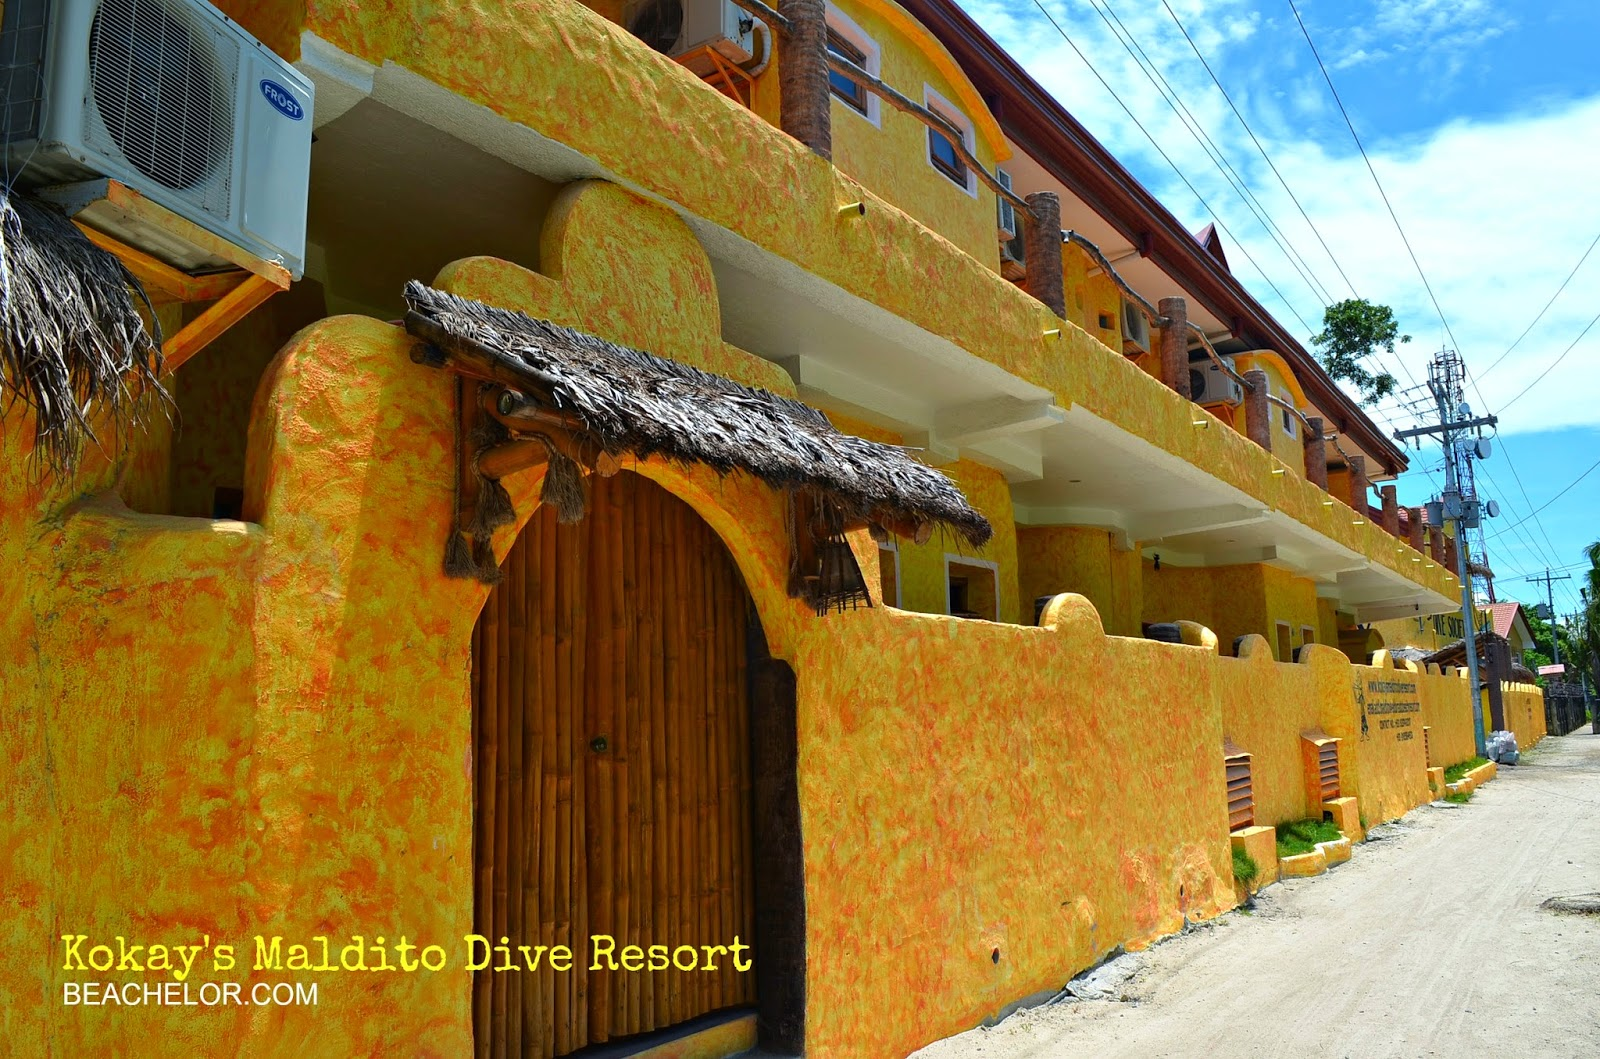 kokay's maldito dive resort - list of resorts in malapascua